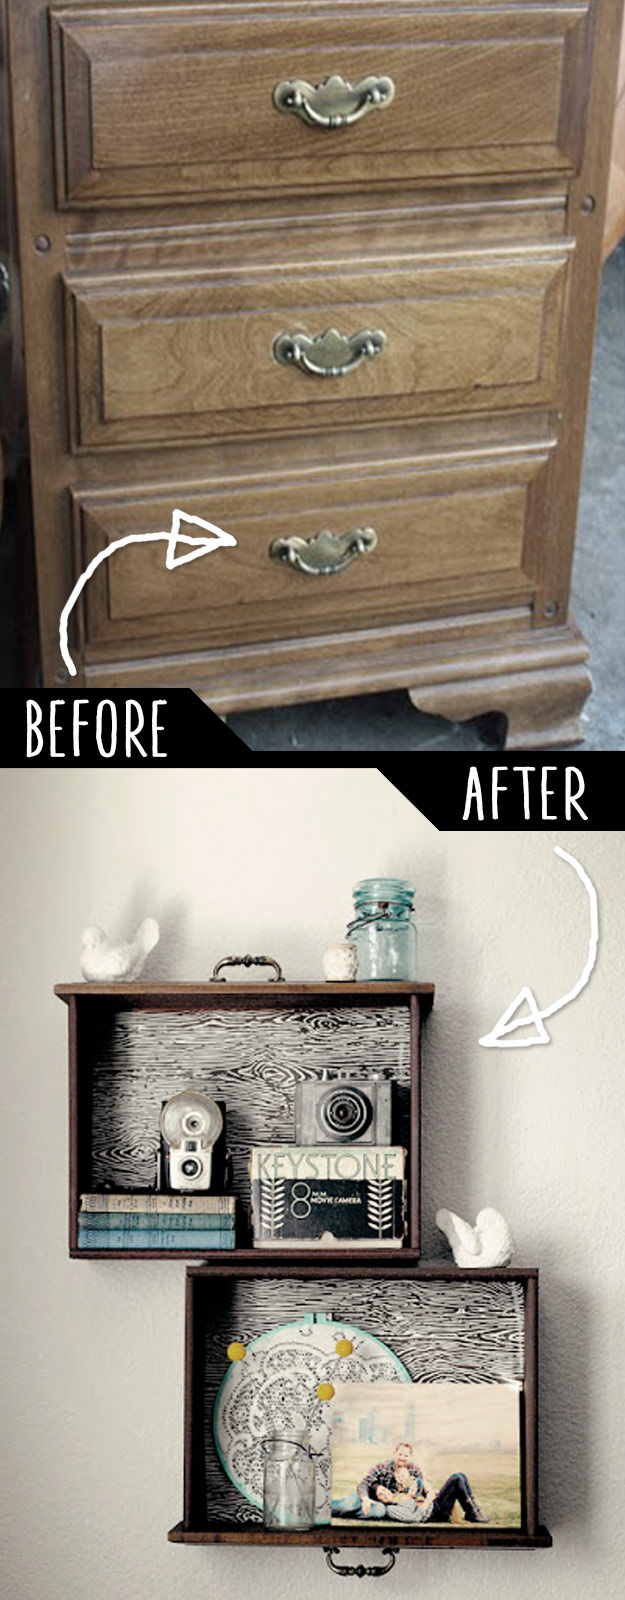 39 clever diy furniture hacks diy joy for Cheap apartment decorating ideas furniture